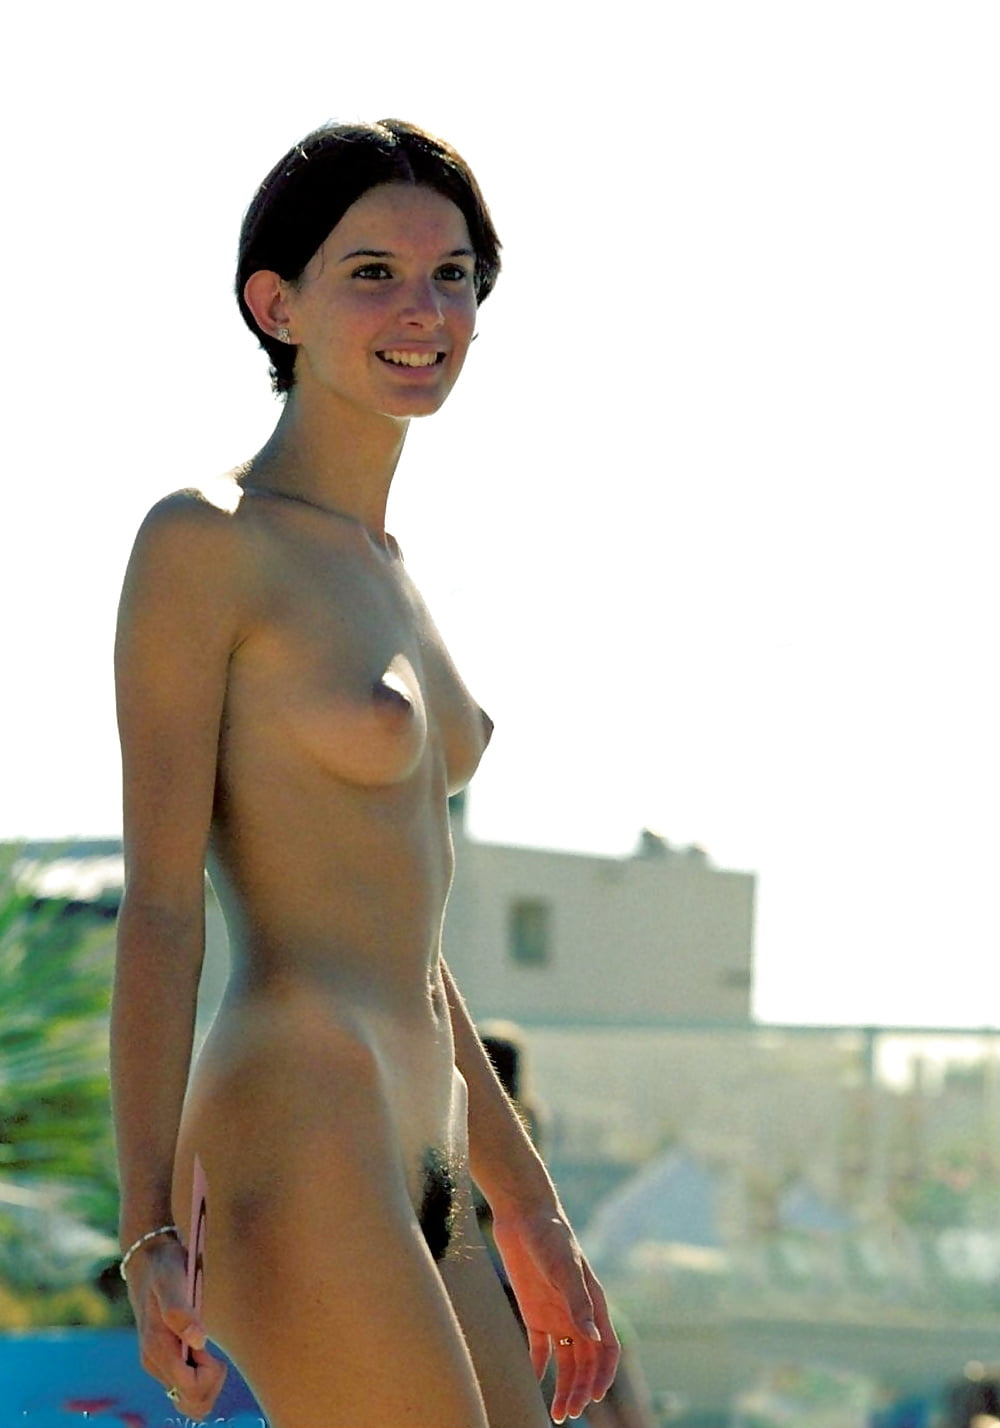 Teen Nudist Pageant No 6 - 6 Fotos - Xhamstercom-7215